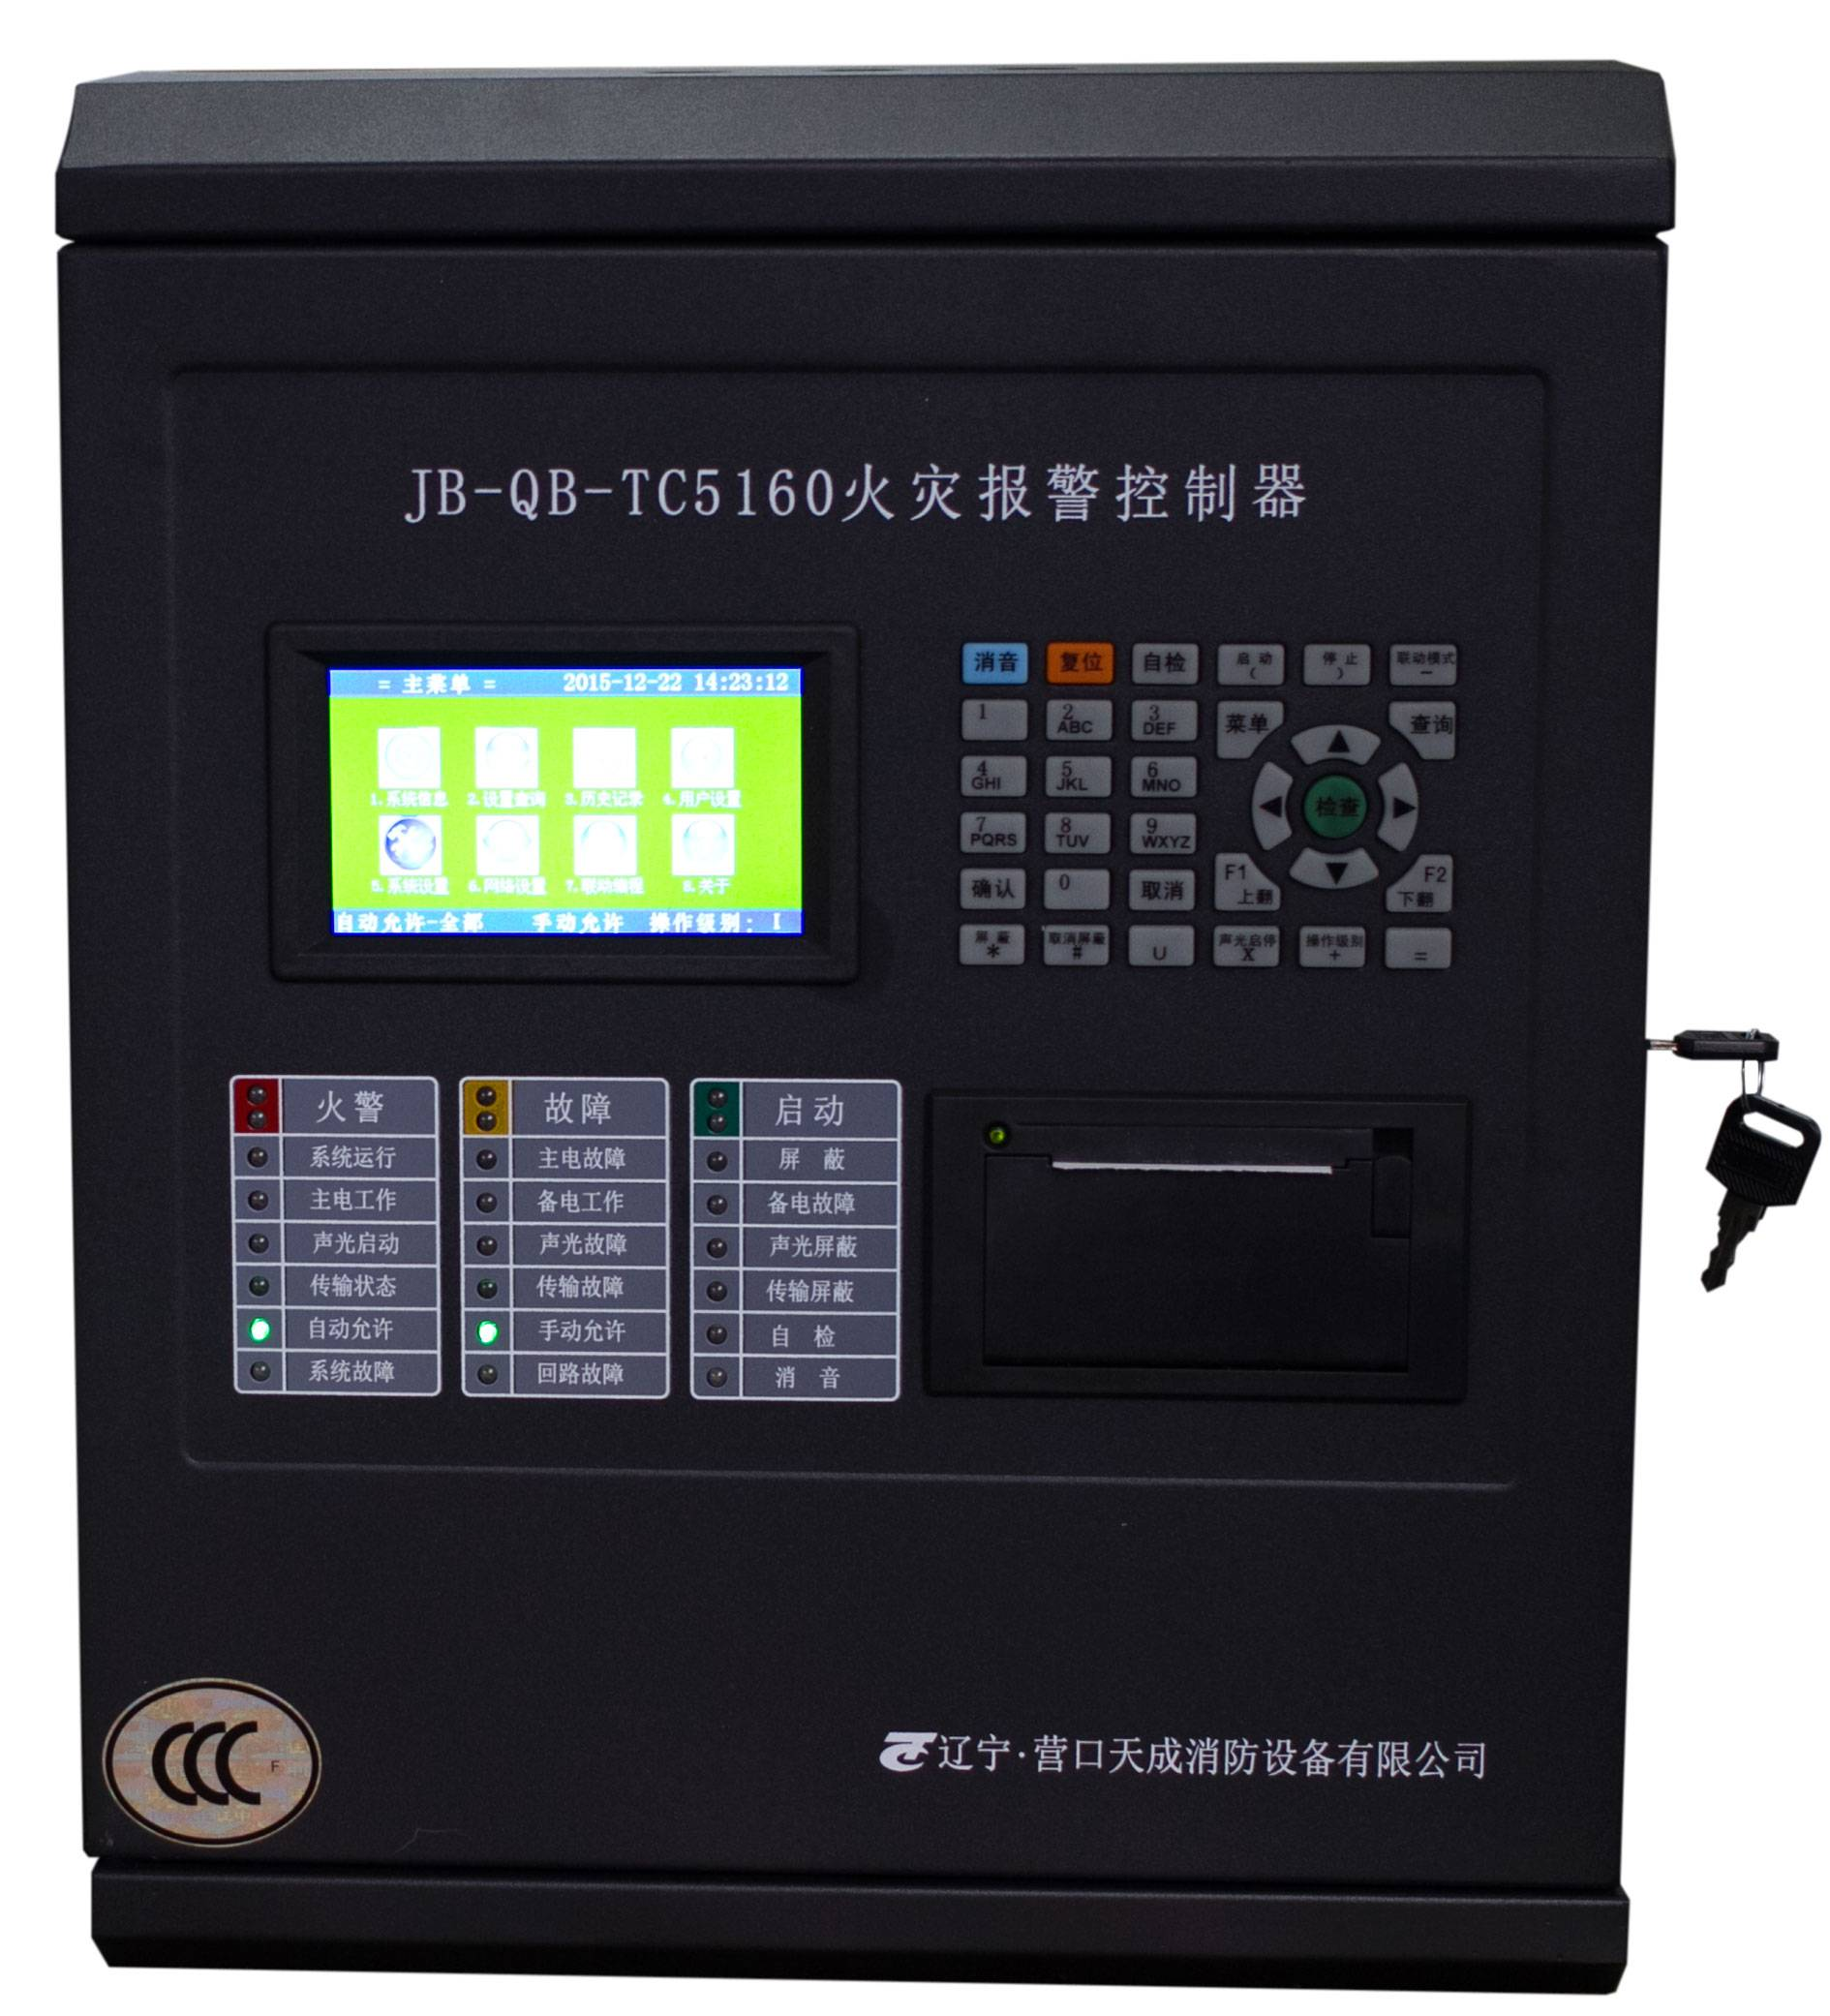 JB-QB-TC5160 Fire Alarm Control Panel (Linkage type)